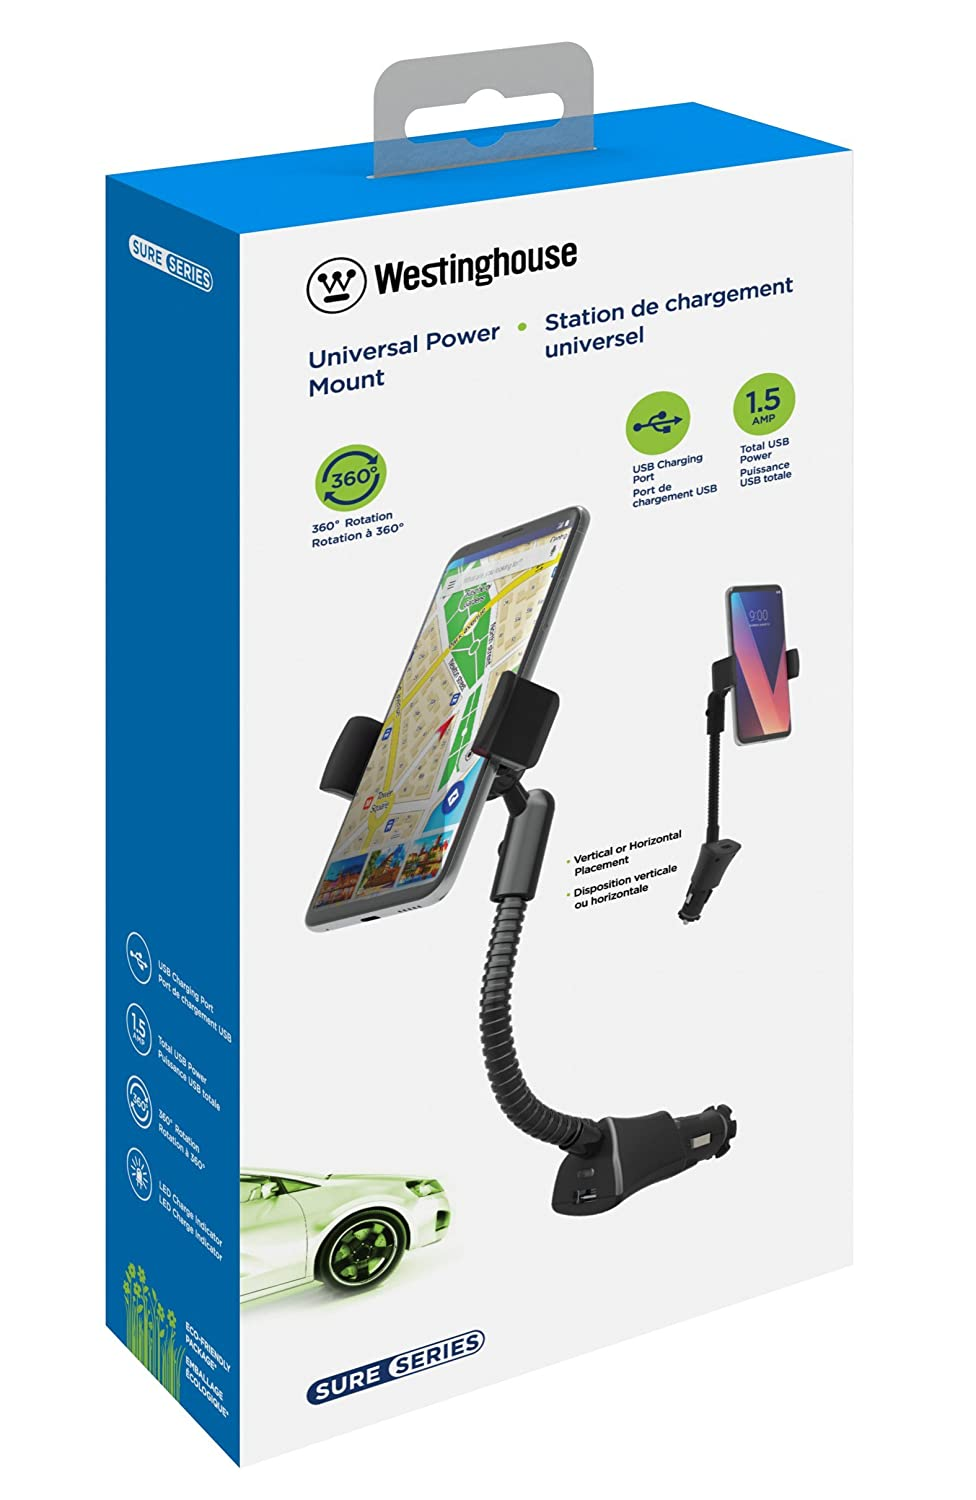 1.5A Westinghouse Universal Smartphone Car Charger Mount with 1 USB Charging Port